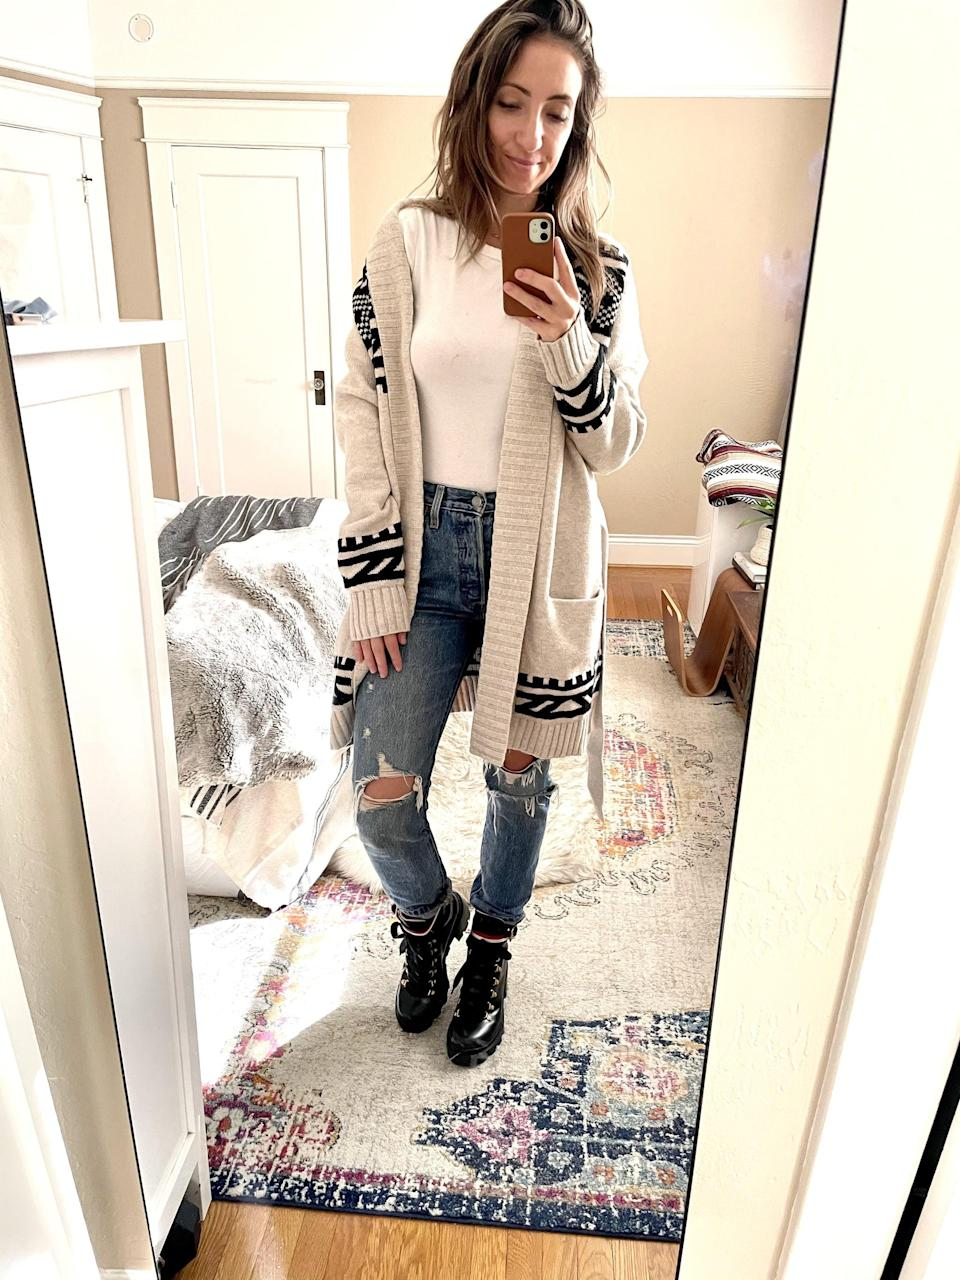 """<p><strong>The item:</strong> <span>Cozy Fair Isle Tie-Belt Cardigan Sweater</span> ($42, originally $55)</p> <p><strong>What our editor said:</strong> """"It's nice and big - perfect for staying warm. I wore it with medium-rinse ripped jeans, combat boots, and a simple white T-shirt tucked in. The sweater is the standout piece of this look, so I didn't want anything to compete with it."""" - RB</p> <p>If you want to read more, here is the <a href=""""https://www.popsugar.com/fashion/old-navy-cardigan-sweater-review-48009561"""" class=""""link rapid-noclick-resp"""" rel=""""nofollow noopener"""" target=""""_blank"""" data-ylk=""""slk:complete review"""">complete review</a>.</p>"""